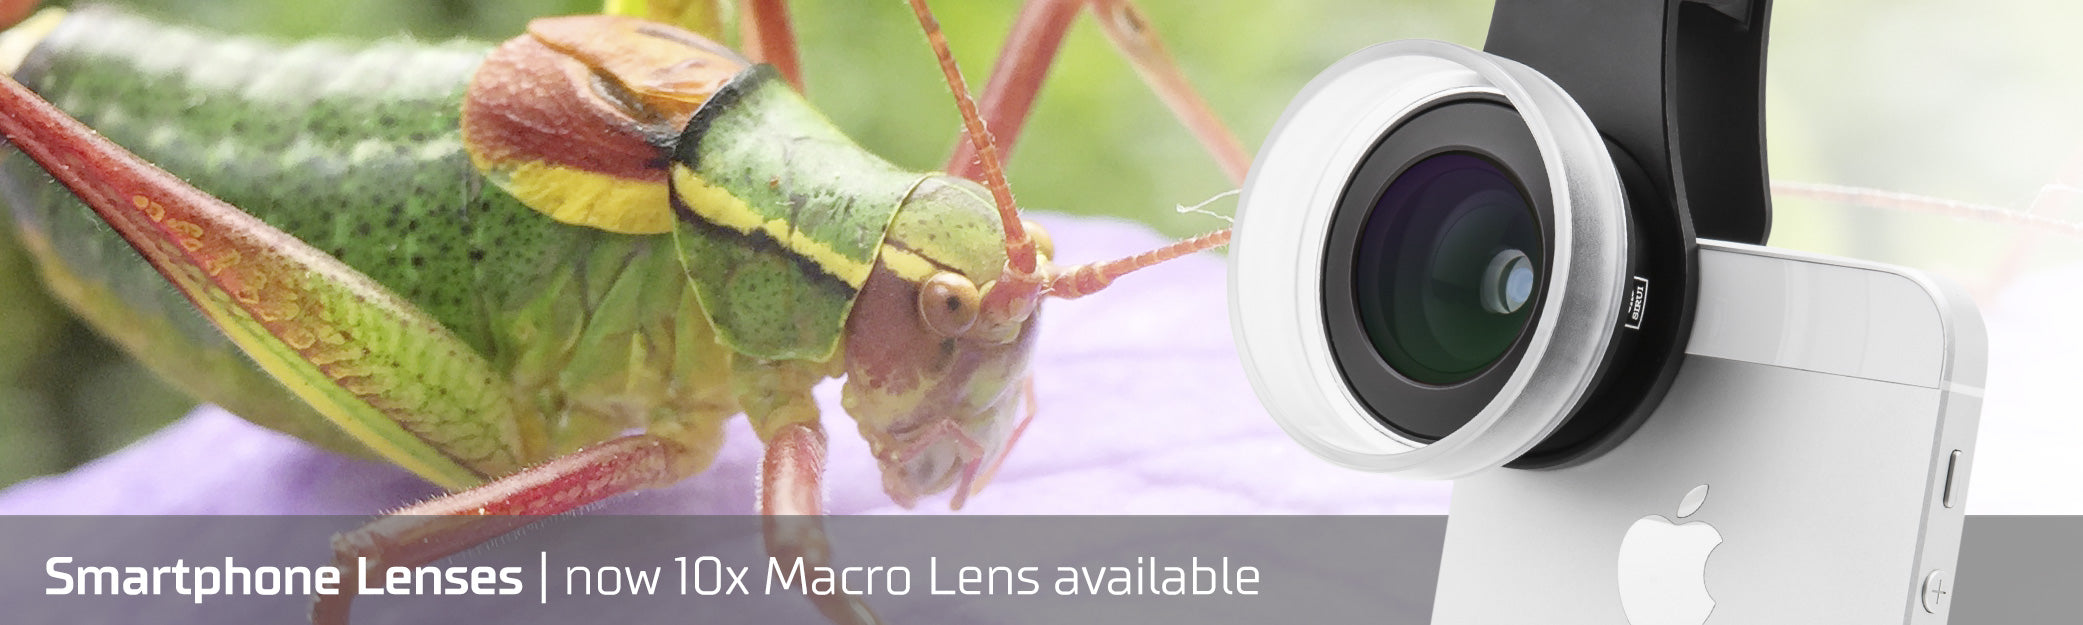 SIRUI Smartphone Lenses with free clip